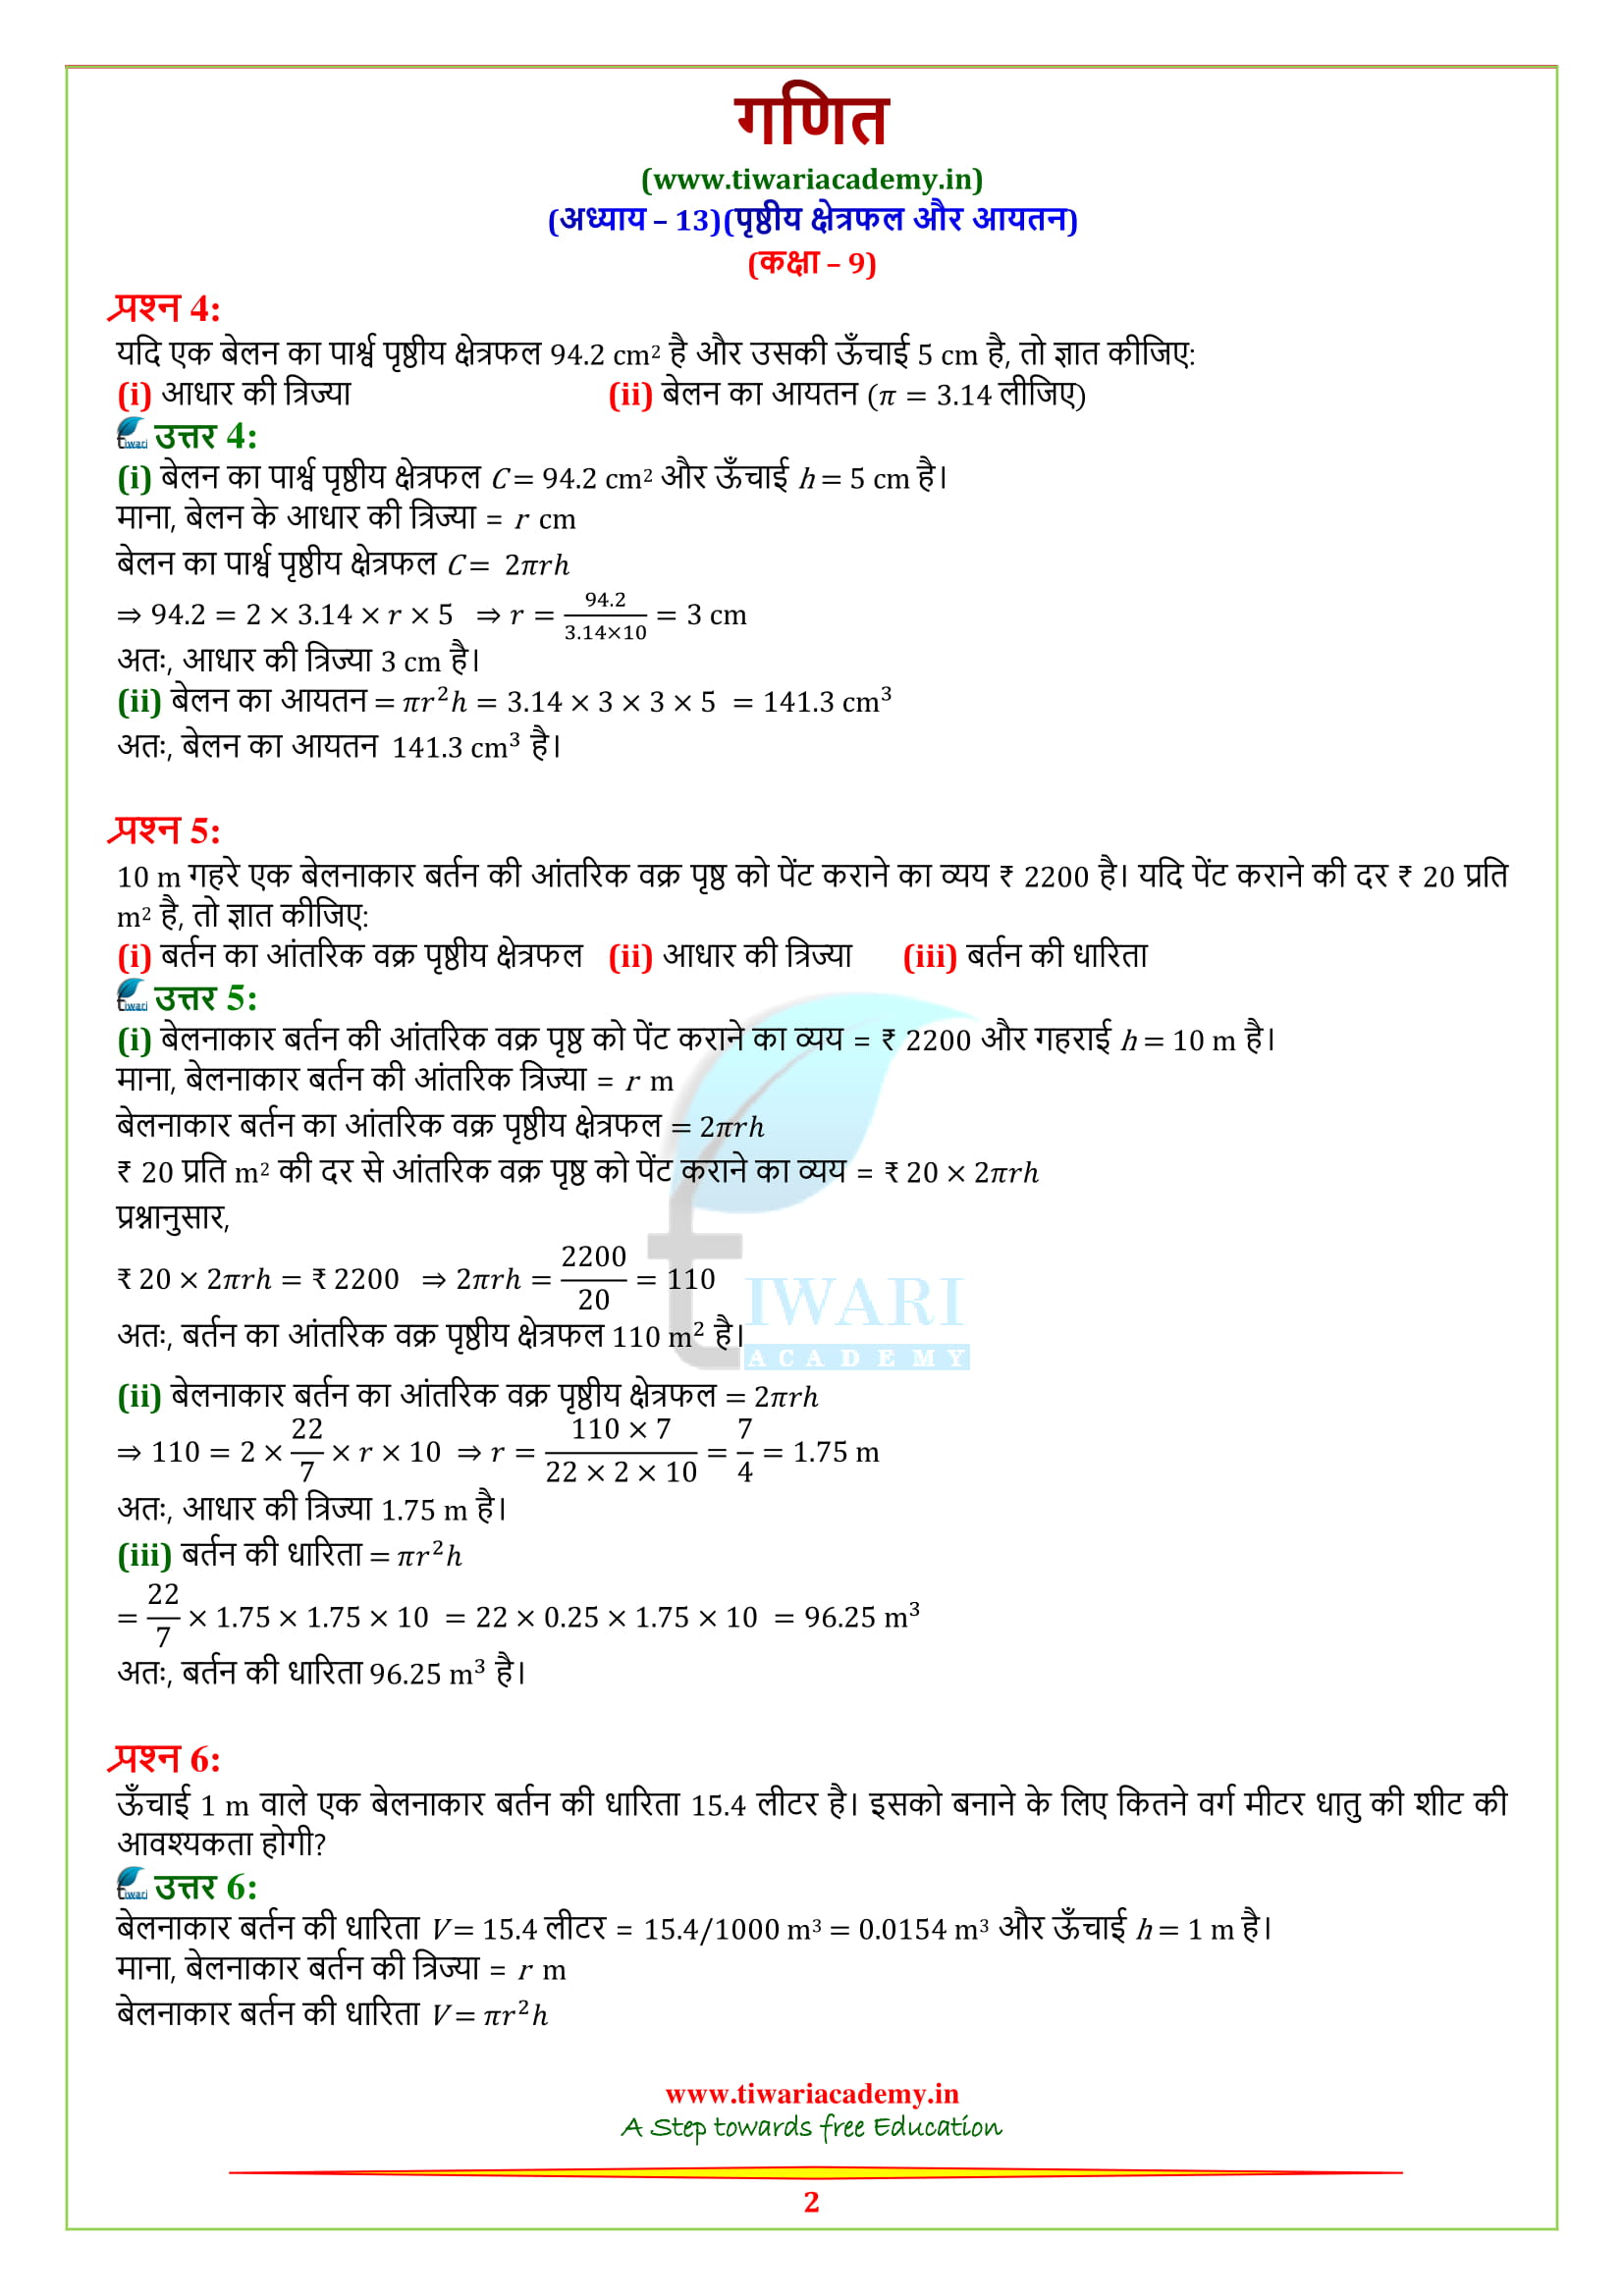 NCERT Solutions for class 9 Maths Exercise 13.6 updated in hindi medium